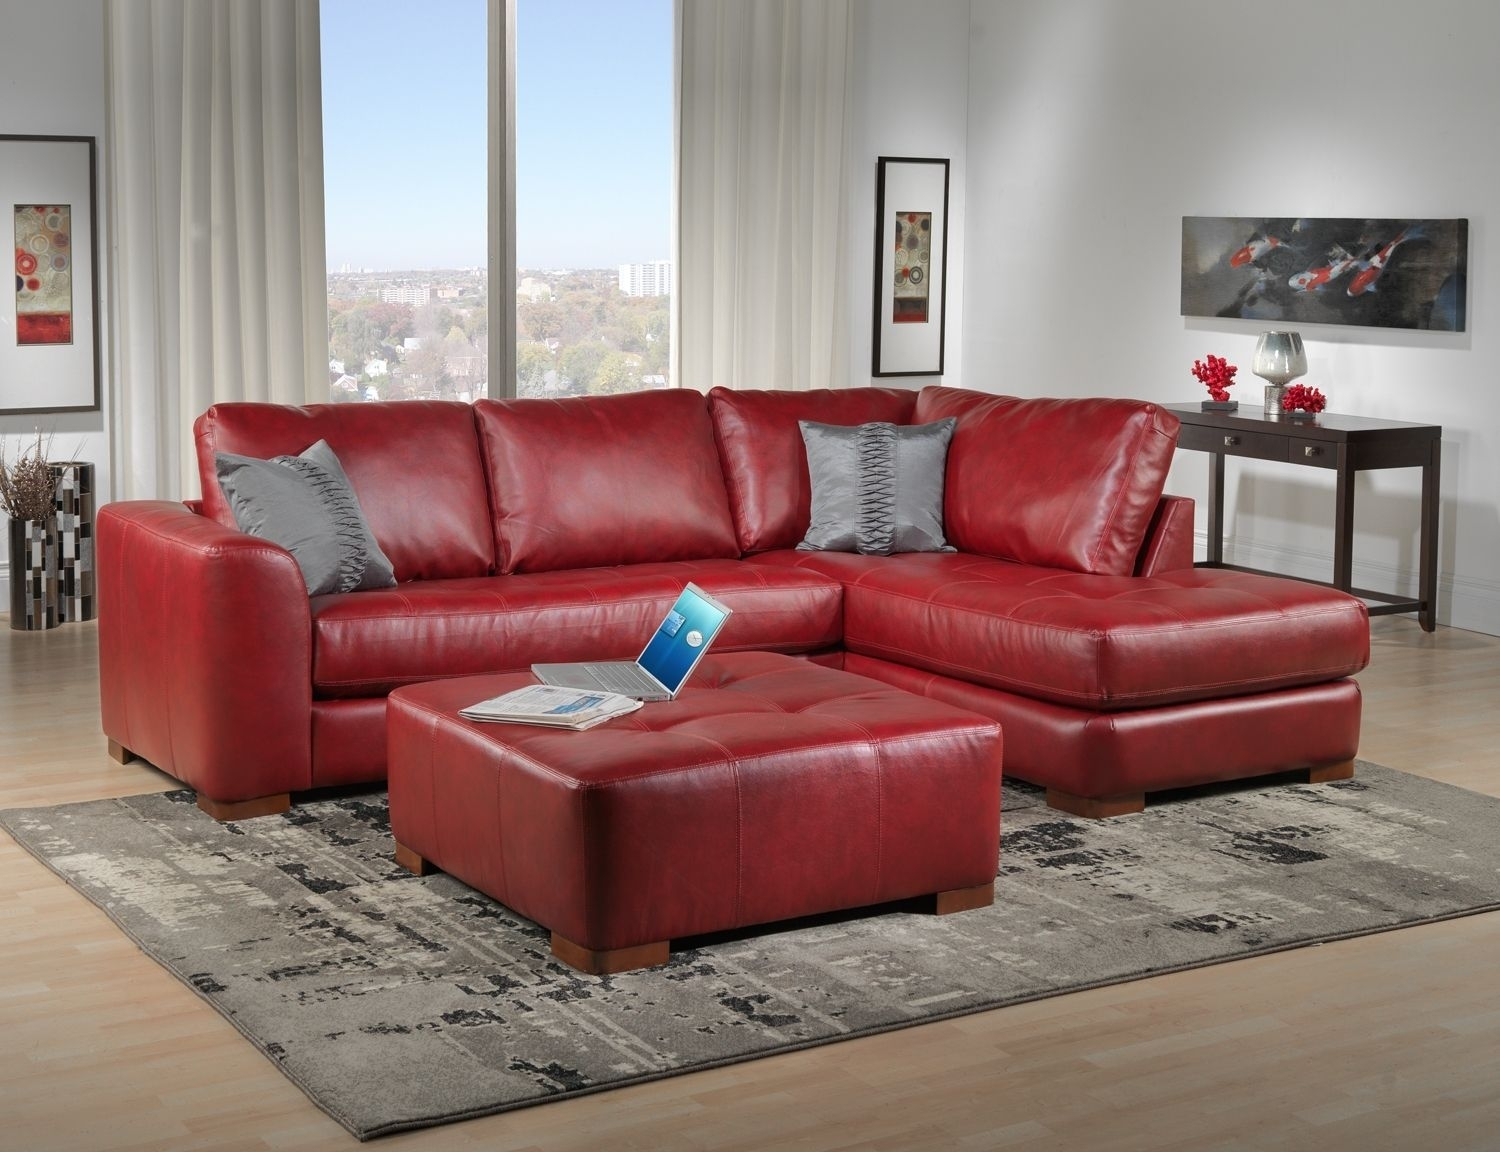 I Want A Red Leather Couch (View 4 of 10)